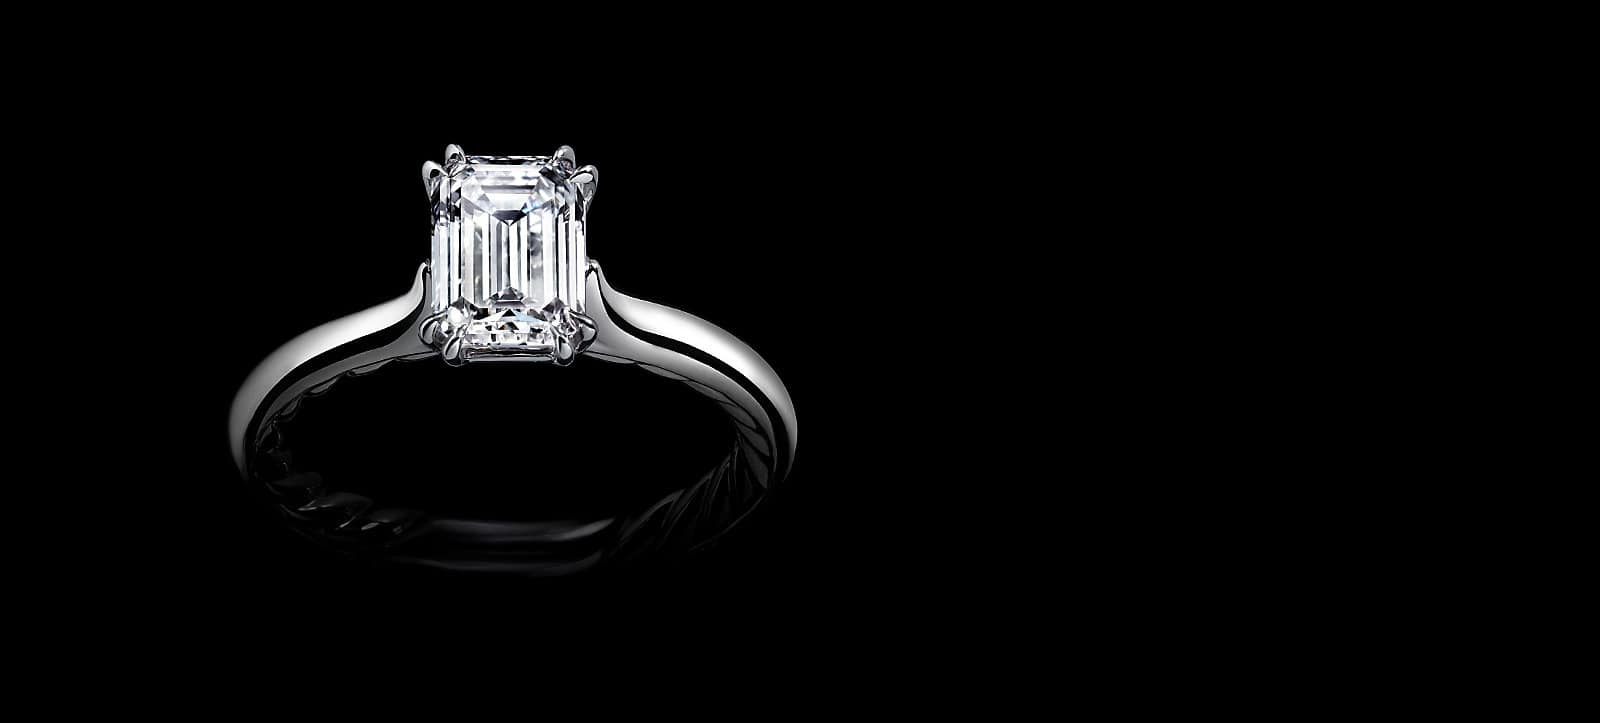 DY Lanai engagement ring in platinum with diamonds.